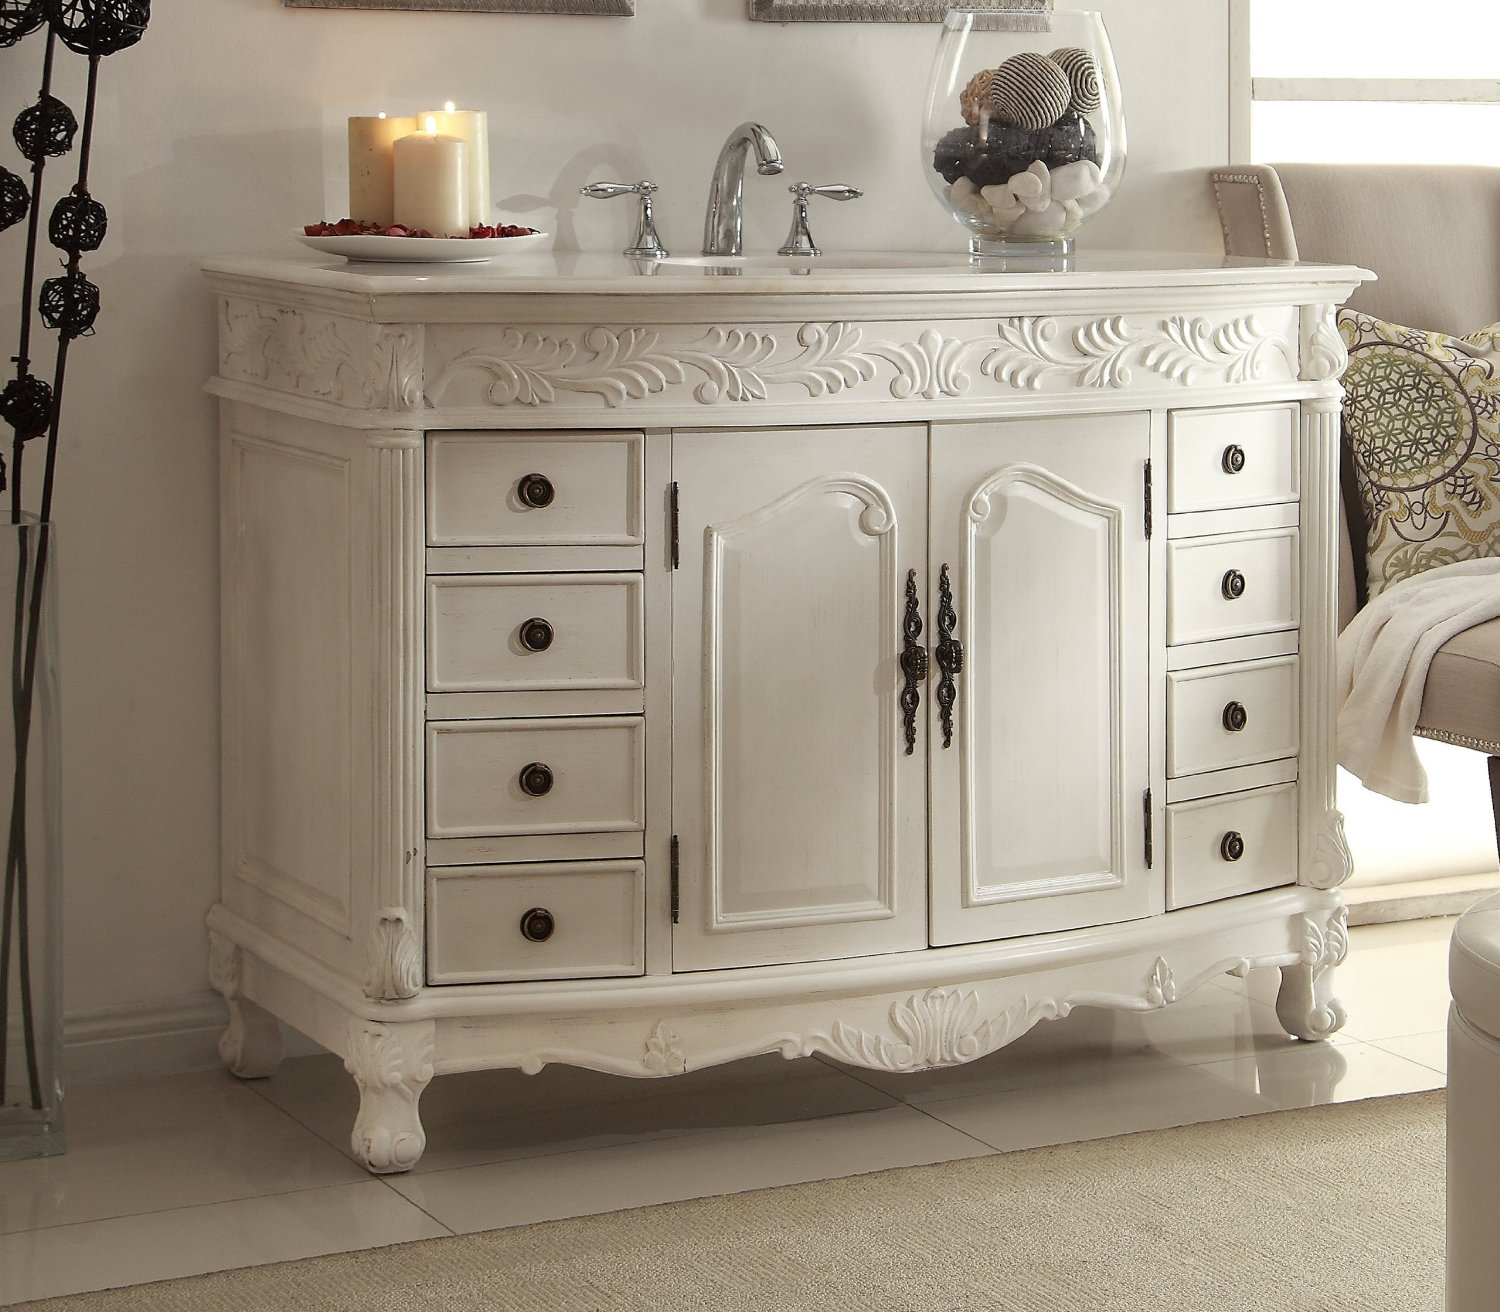 Antique Bathroom Vanity Luxury Bathroom Decoration Adelina 48 Inch Antique White Bathroom Vanity White Marble Top